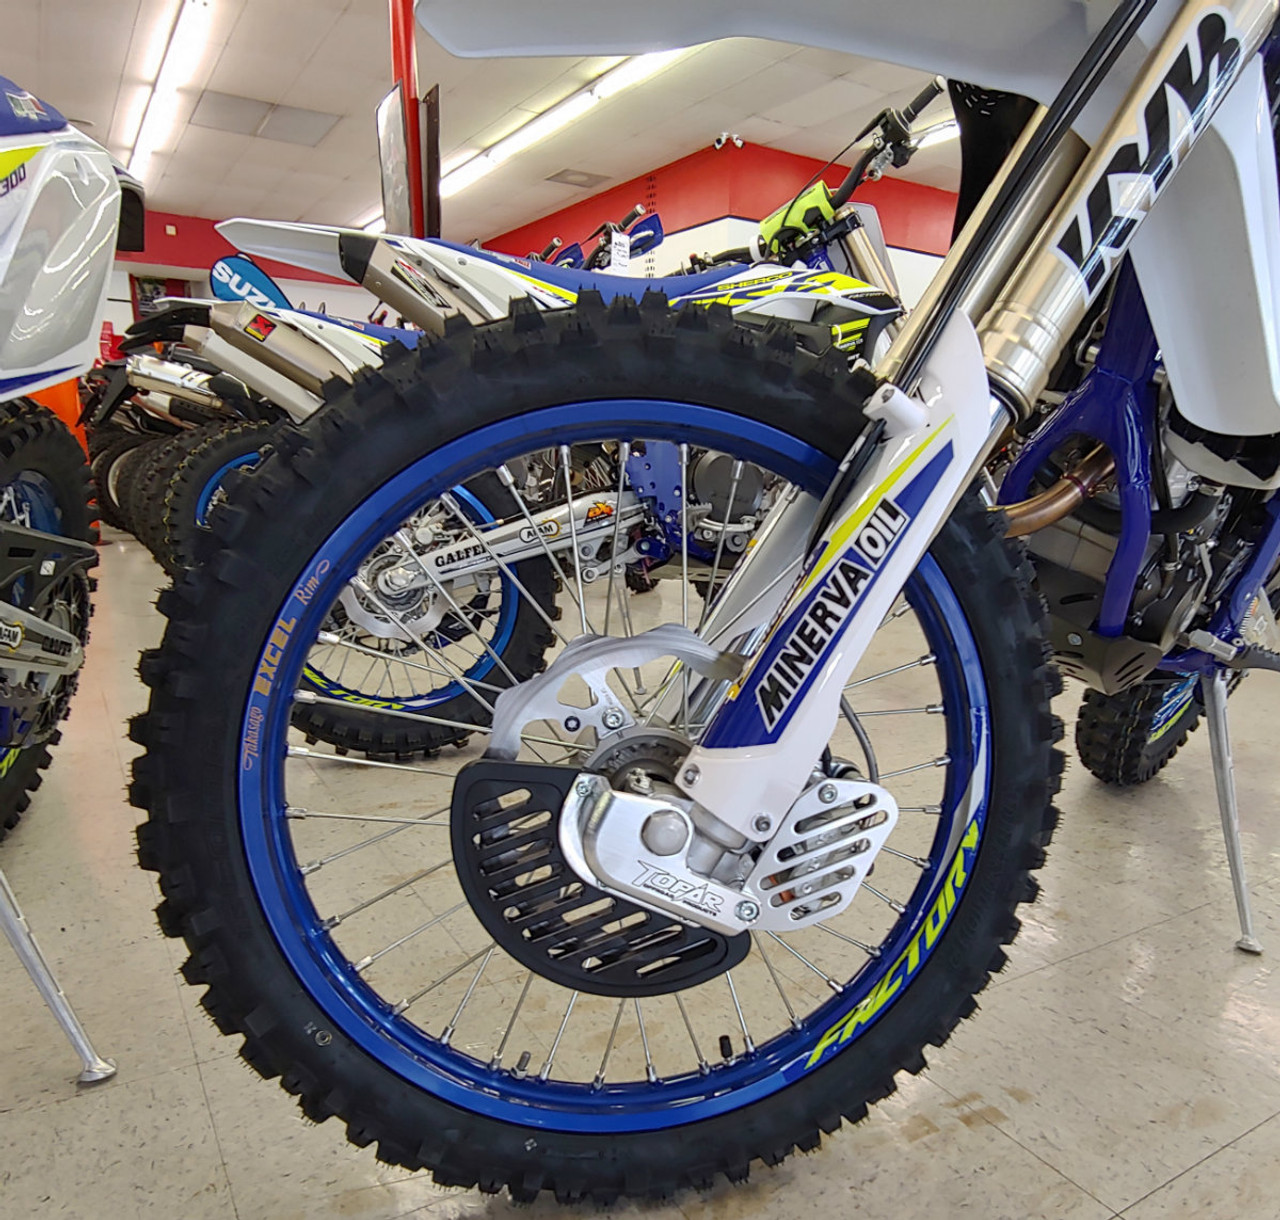 Topar Racing Front Brake Rotor Disc Guard  for 2016-2020 SHERCO with WP, WP Explorer or KYB Forks (shown here installed on a bike with the optional UMHW Plastic fin and caliper guard